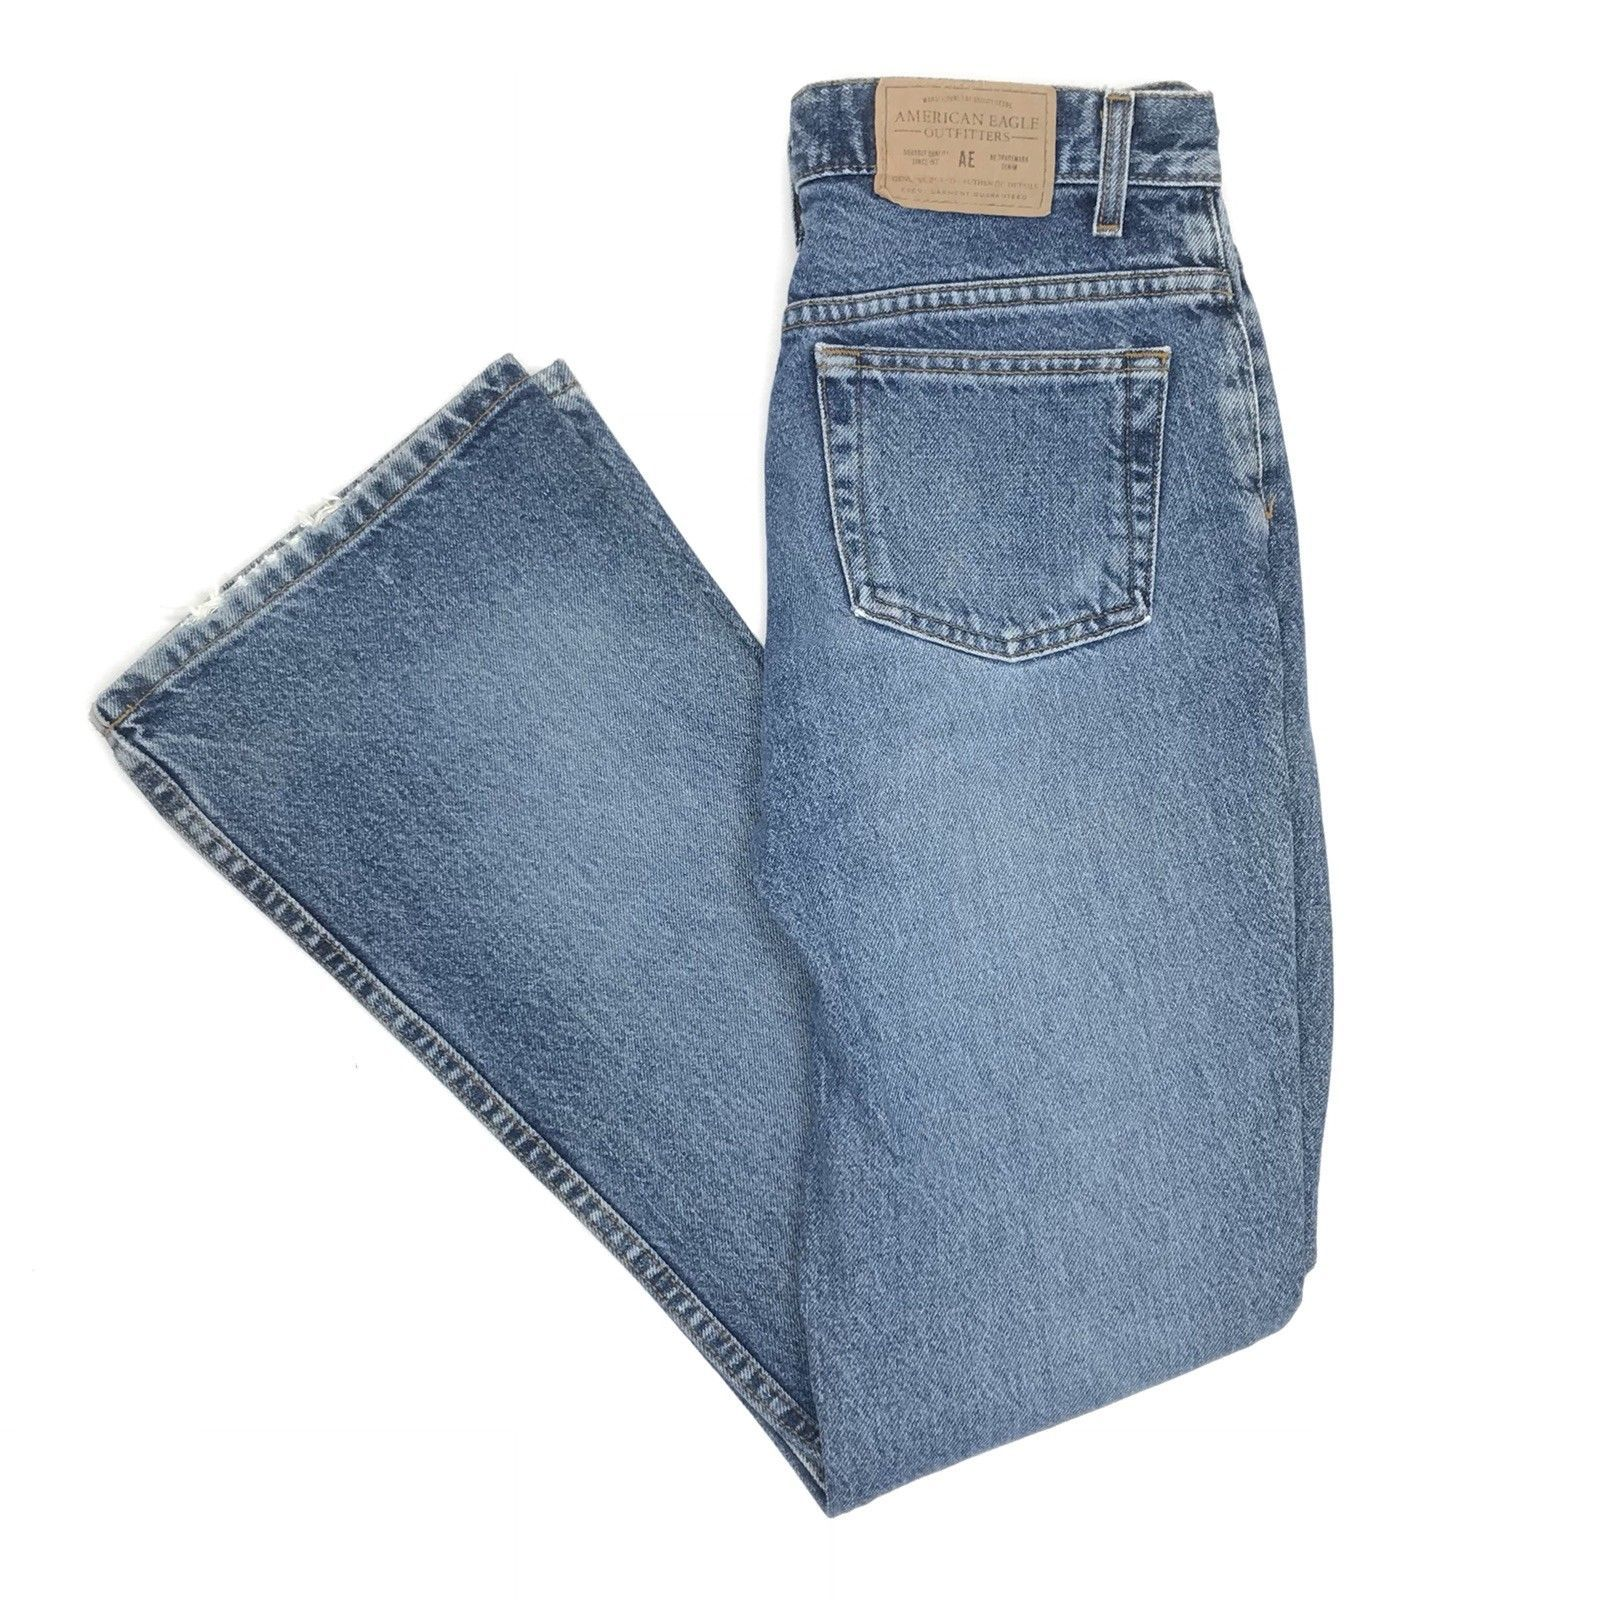 bc3f7c11a4c American Eagle Button Fly Jeans Women Size 2 Regular Straight Leg - $20.00